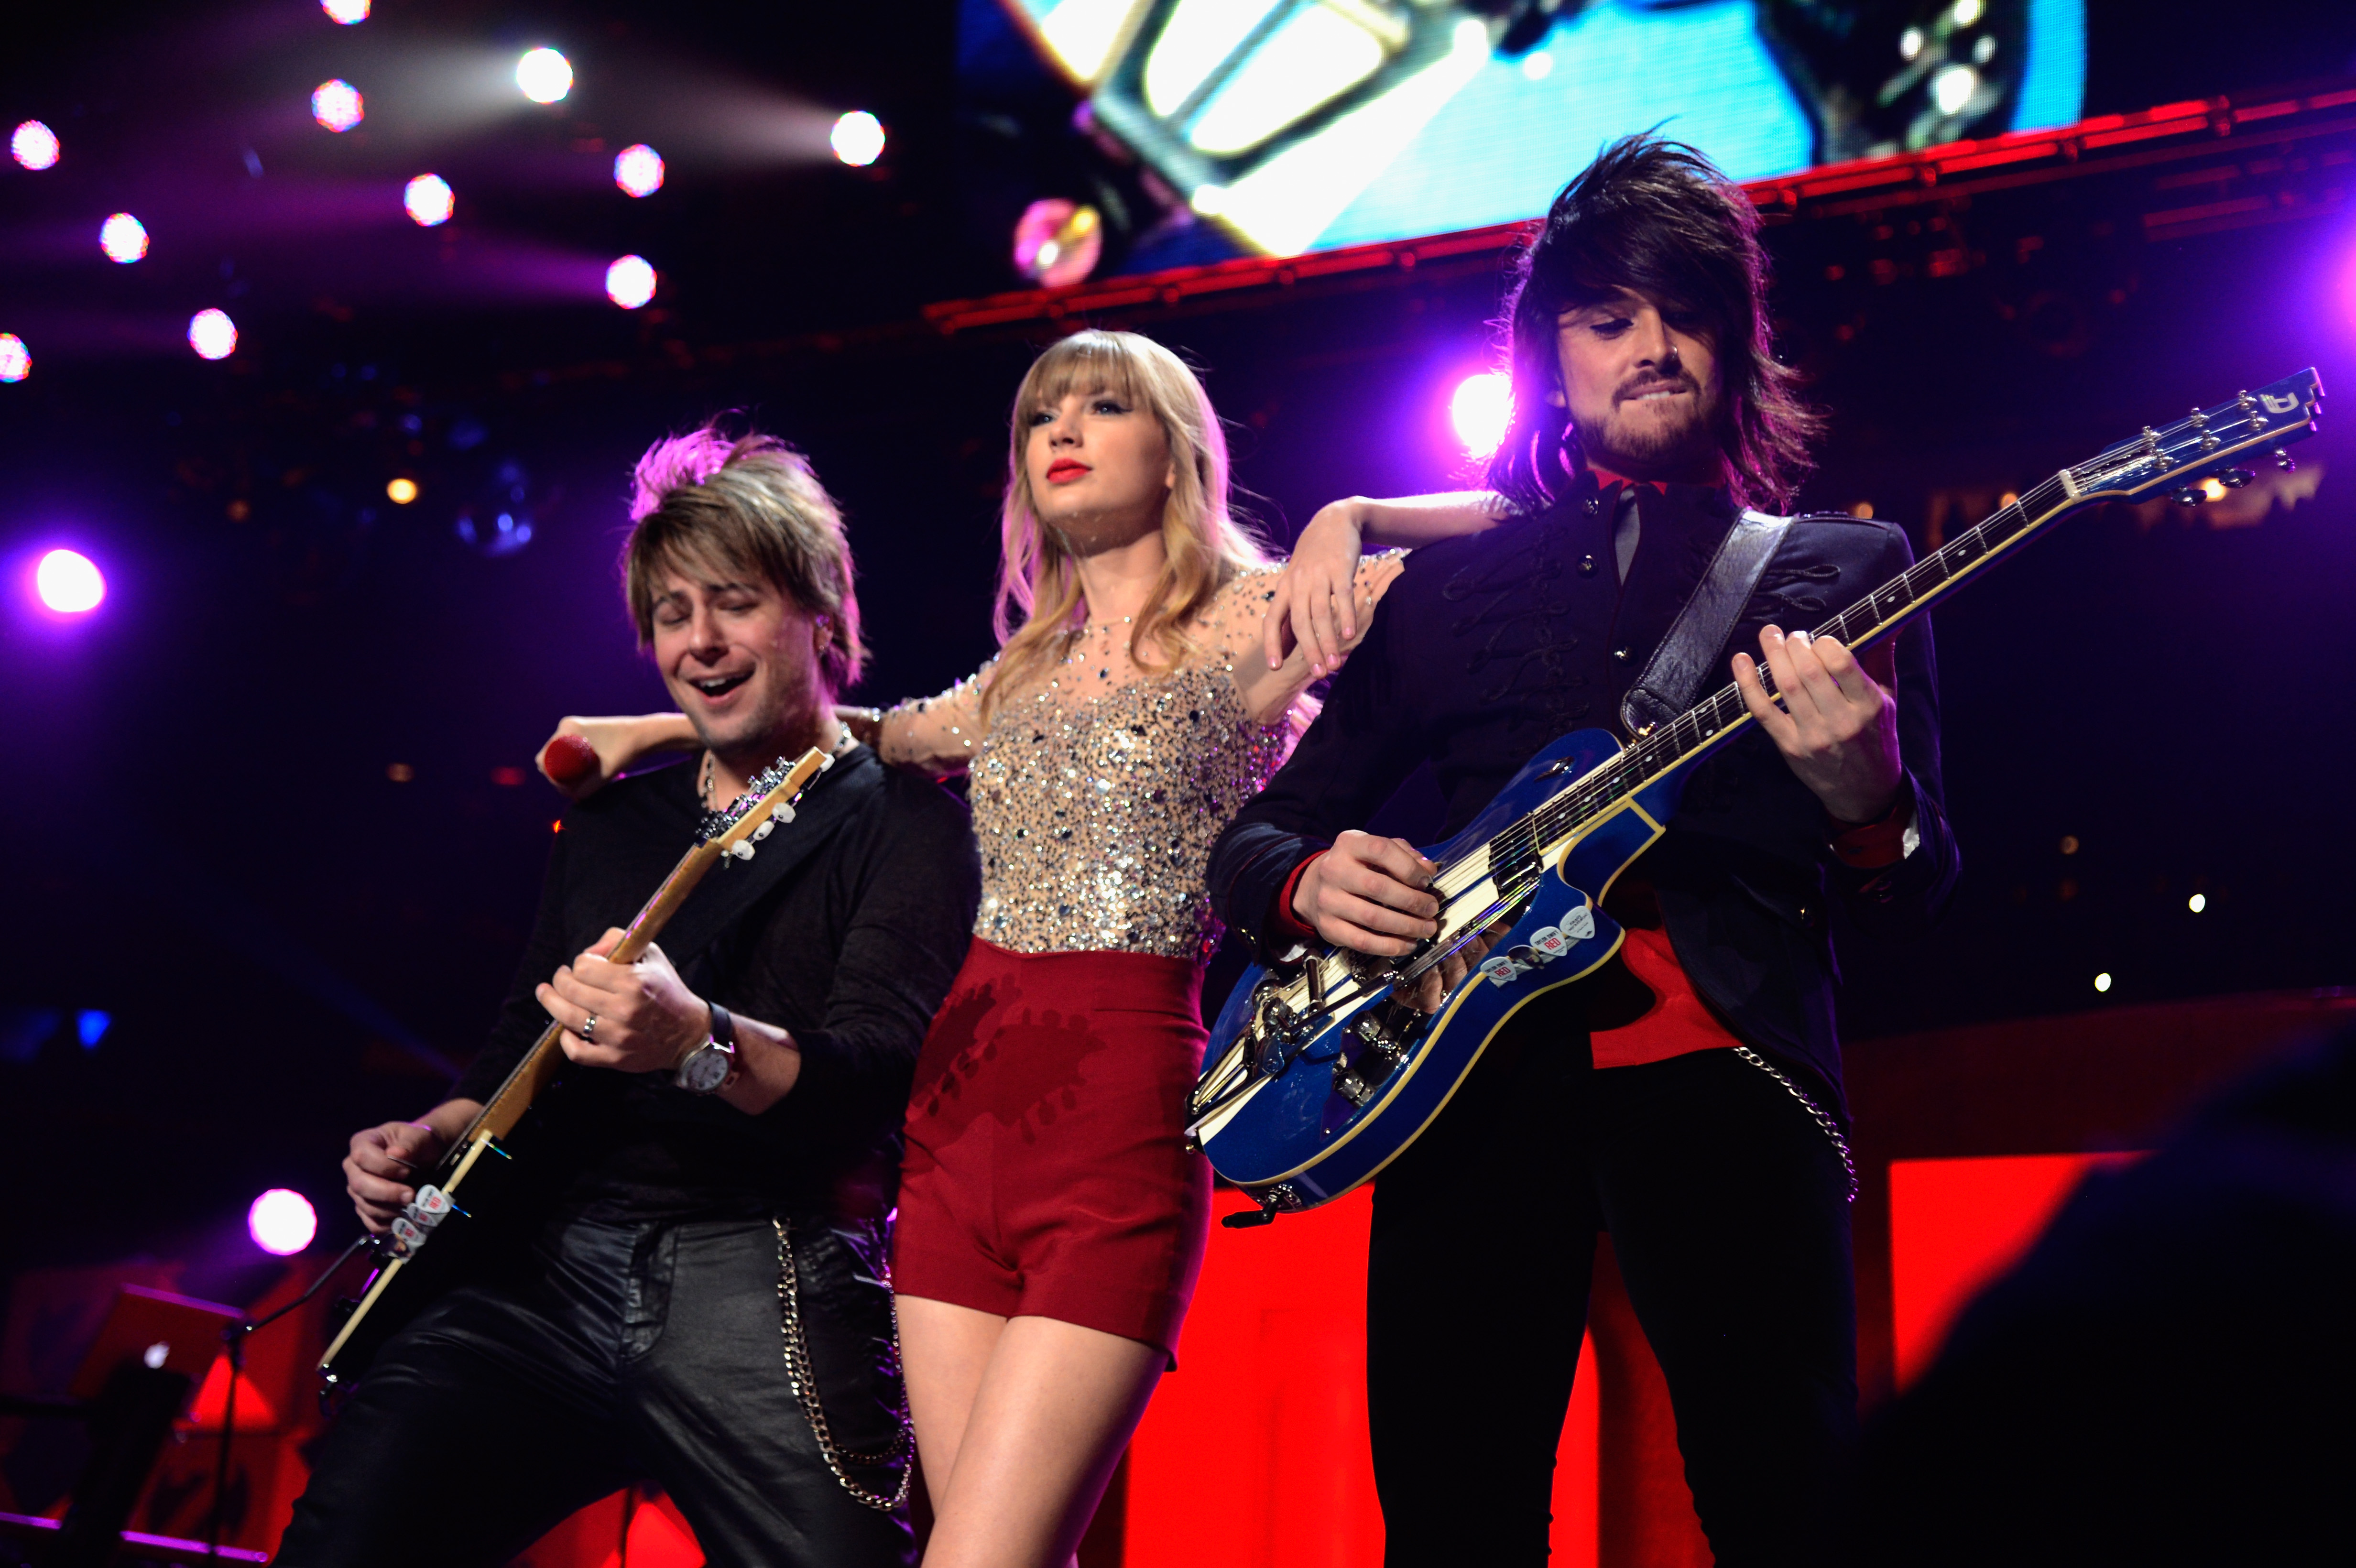 Red Tour Talk Tacoma Wa Added To December 11 Presale The Swift Agency